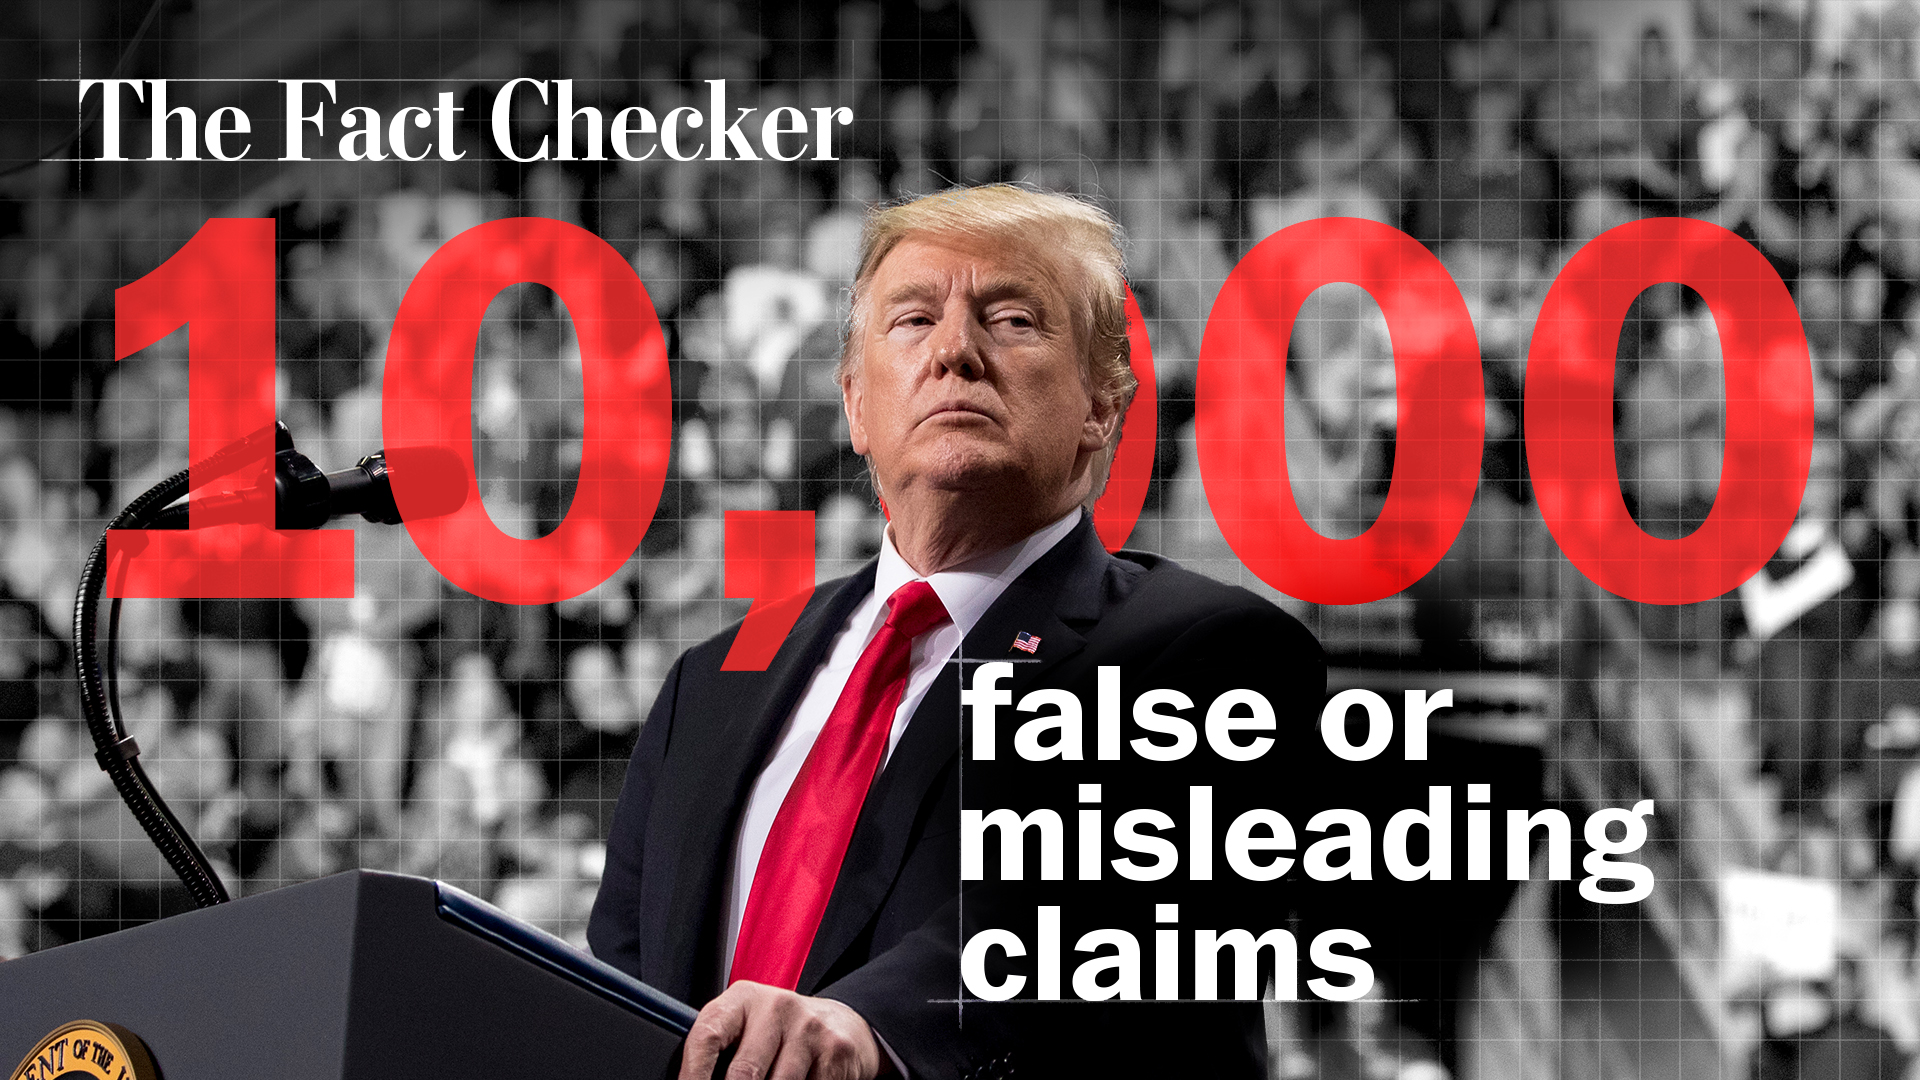 President Trump has made more than 10,000 false or misleading claims